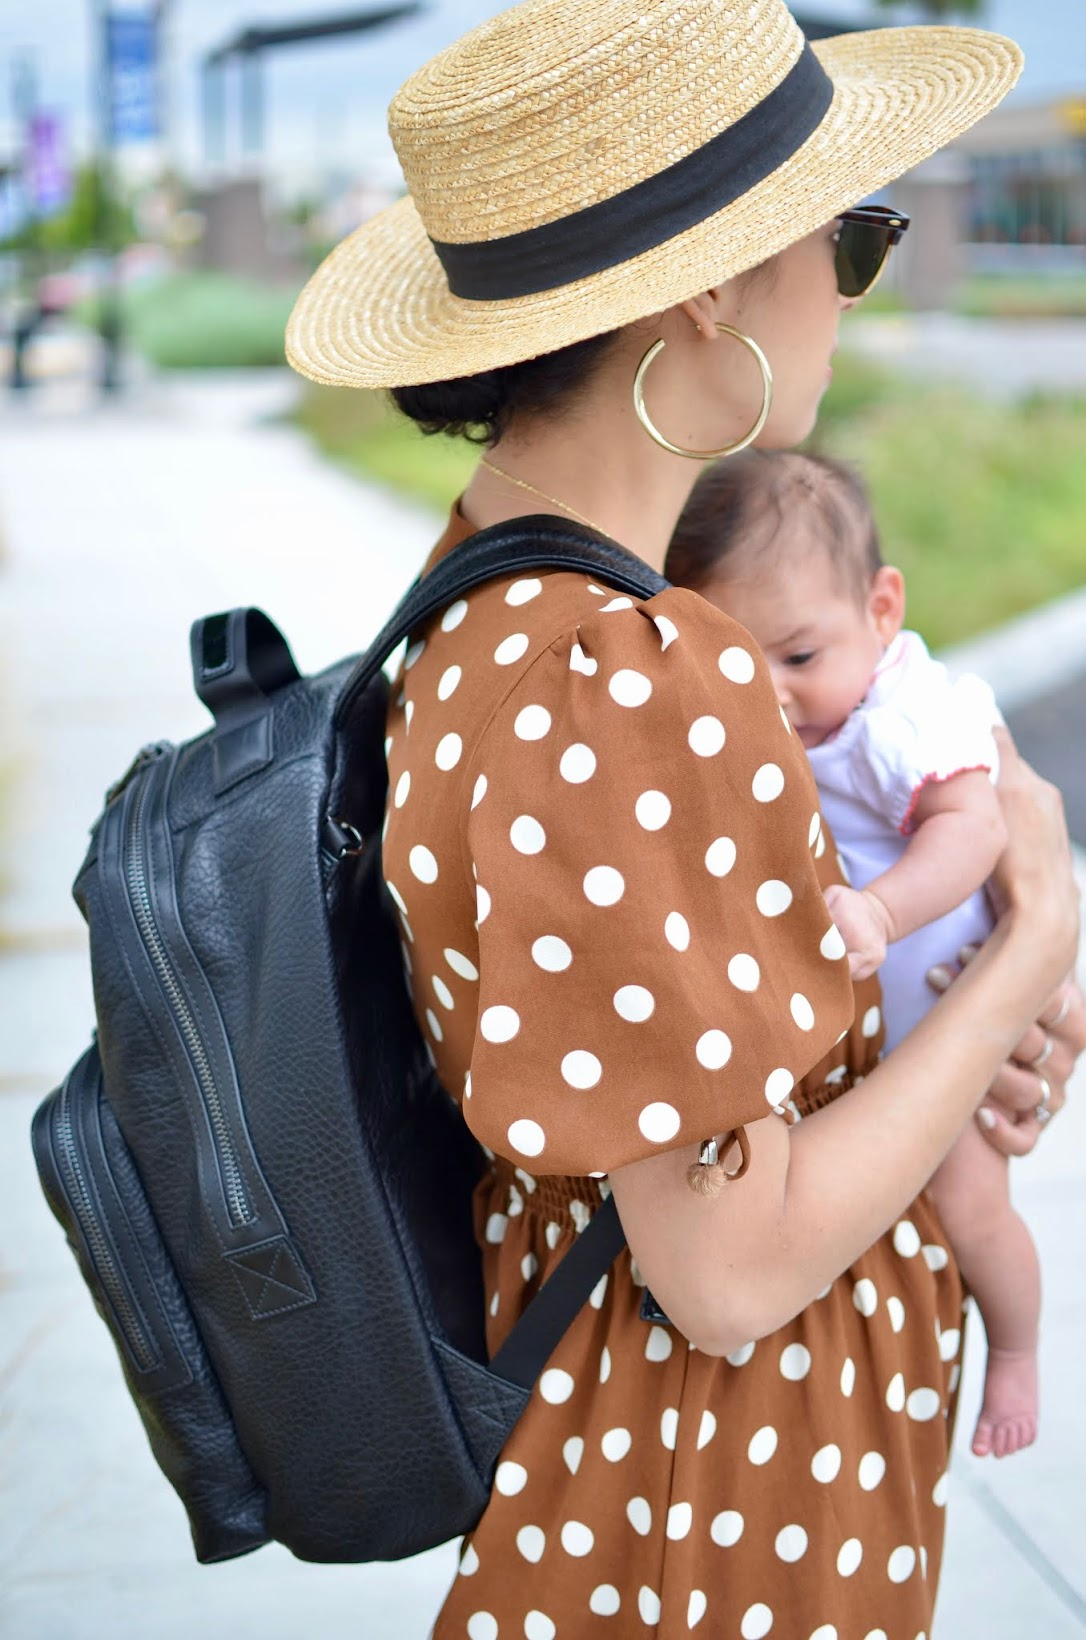 mom style, newborn mom style, Tiba + Marl diaper bag, chicwish, polka dot dress, FarFetch,